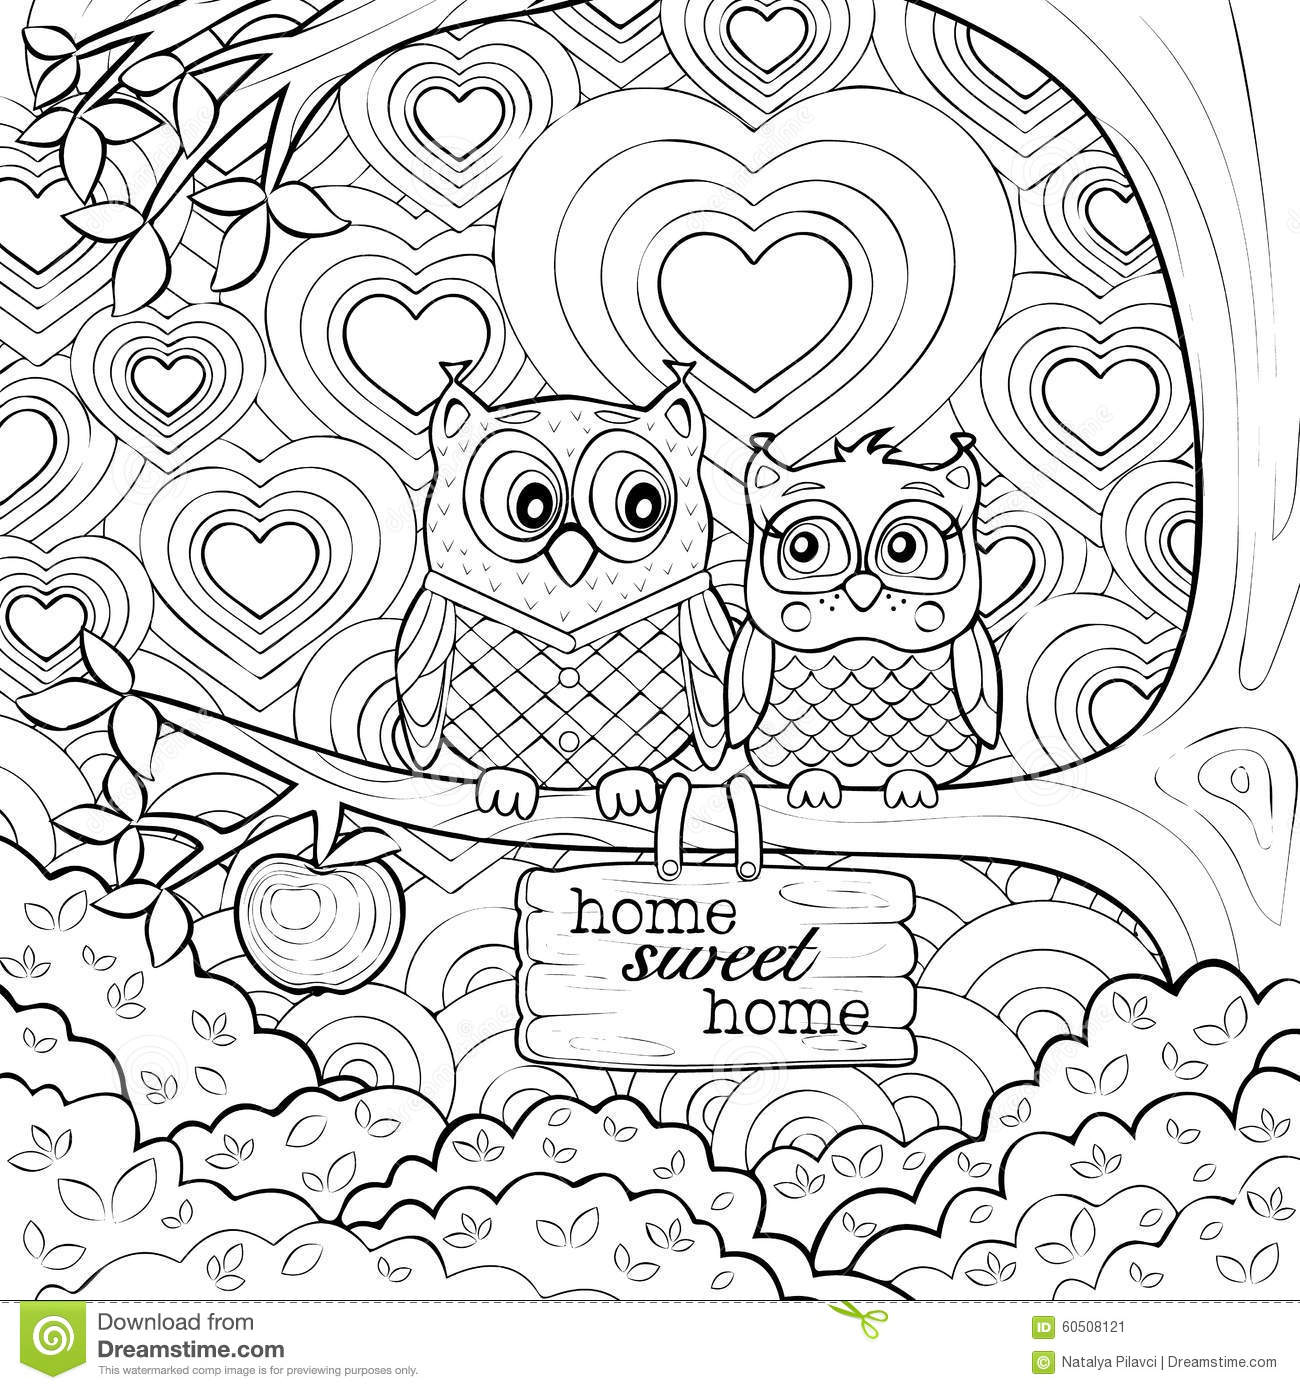 coloring art pages abstract doodle coloring page free printable coloring pages art coloring pages